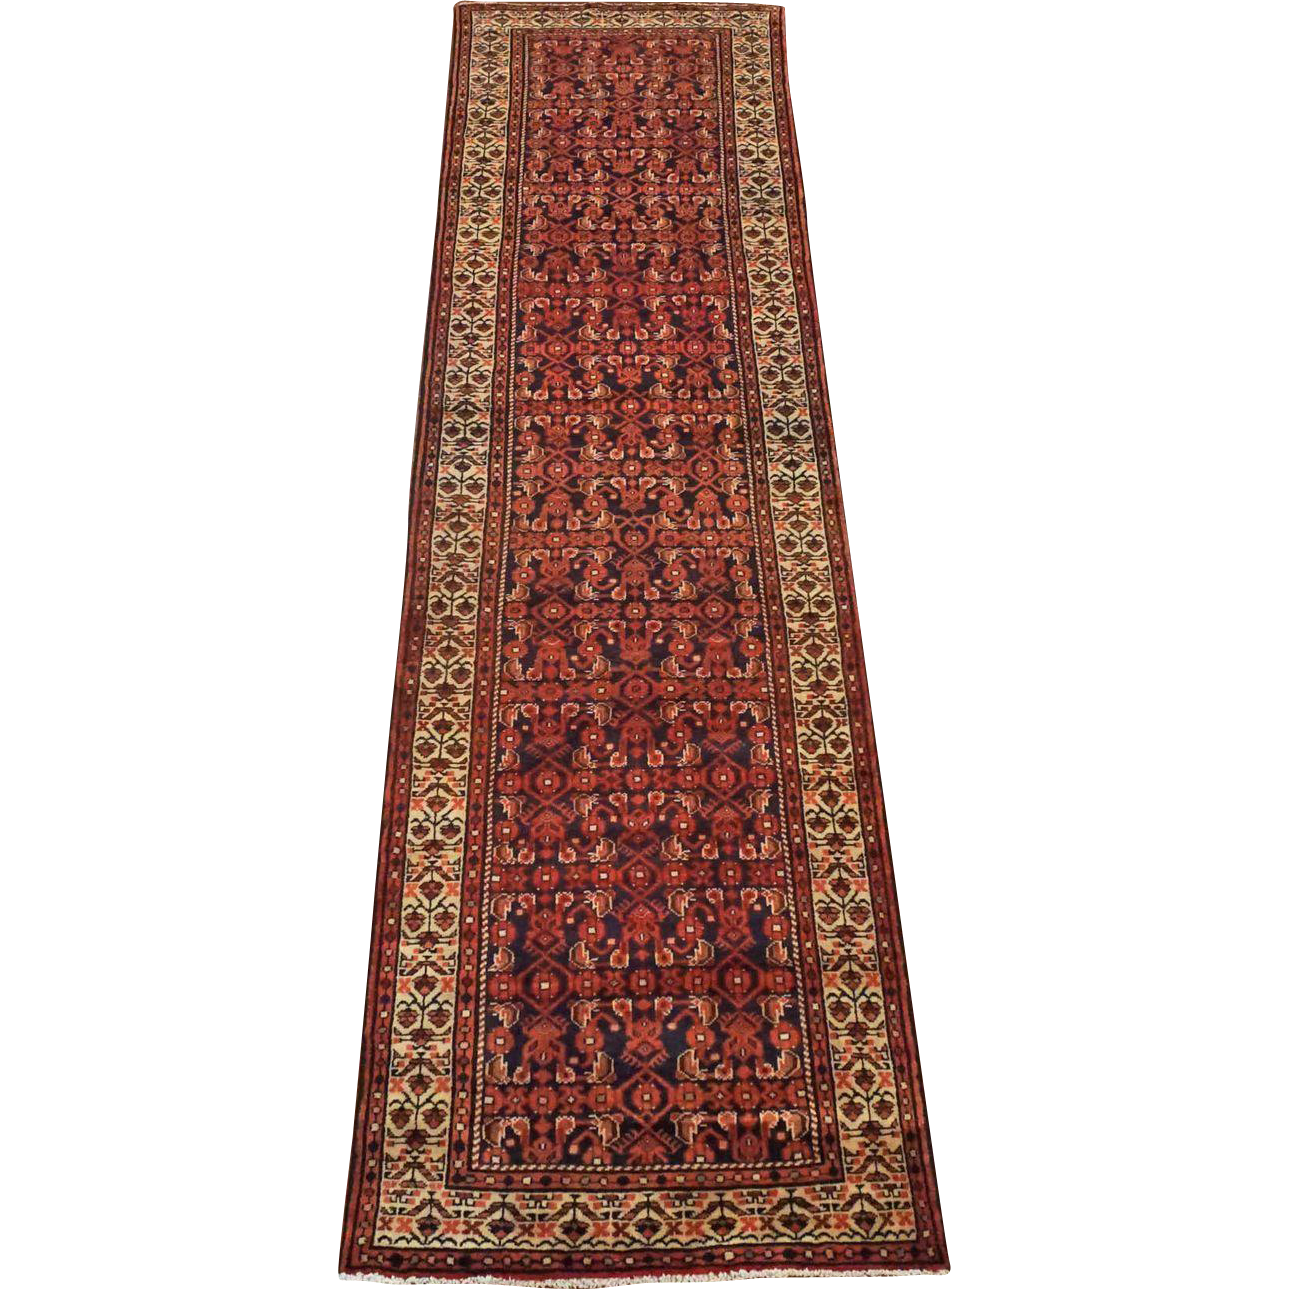 Herati 3X13 Runner Persian 1940s Hand Knotted Wool Area